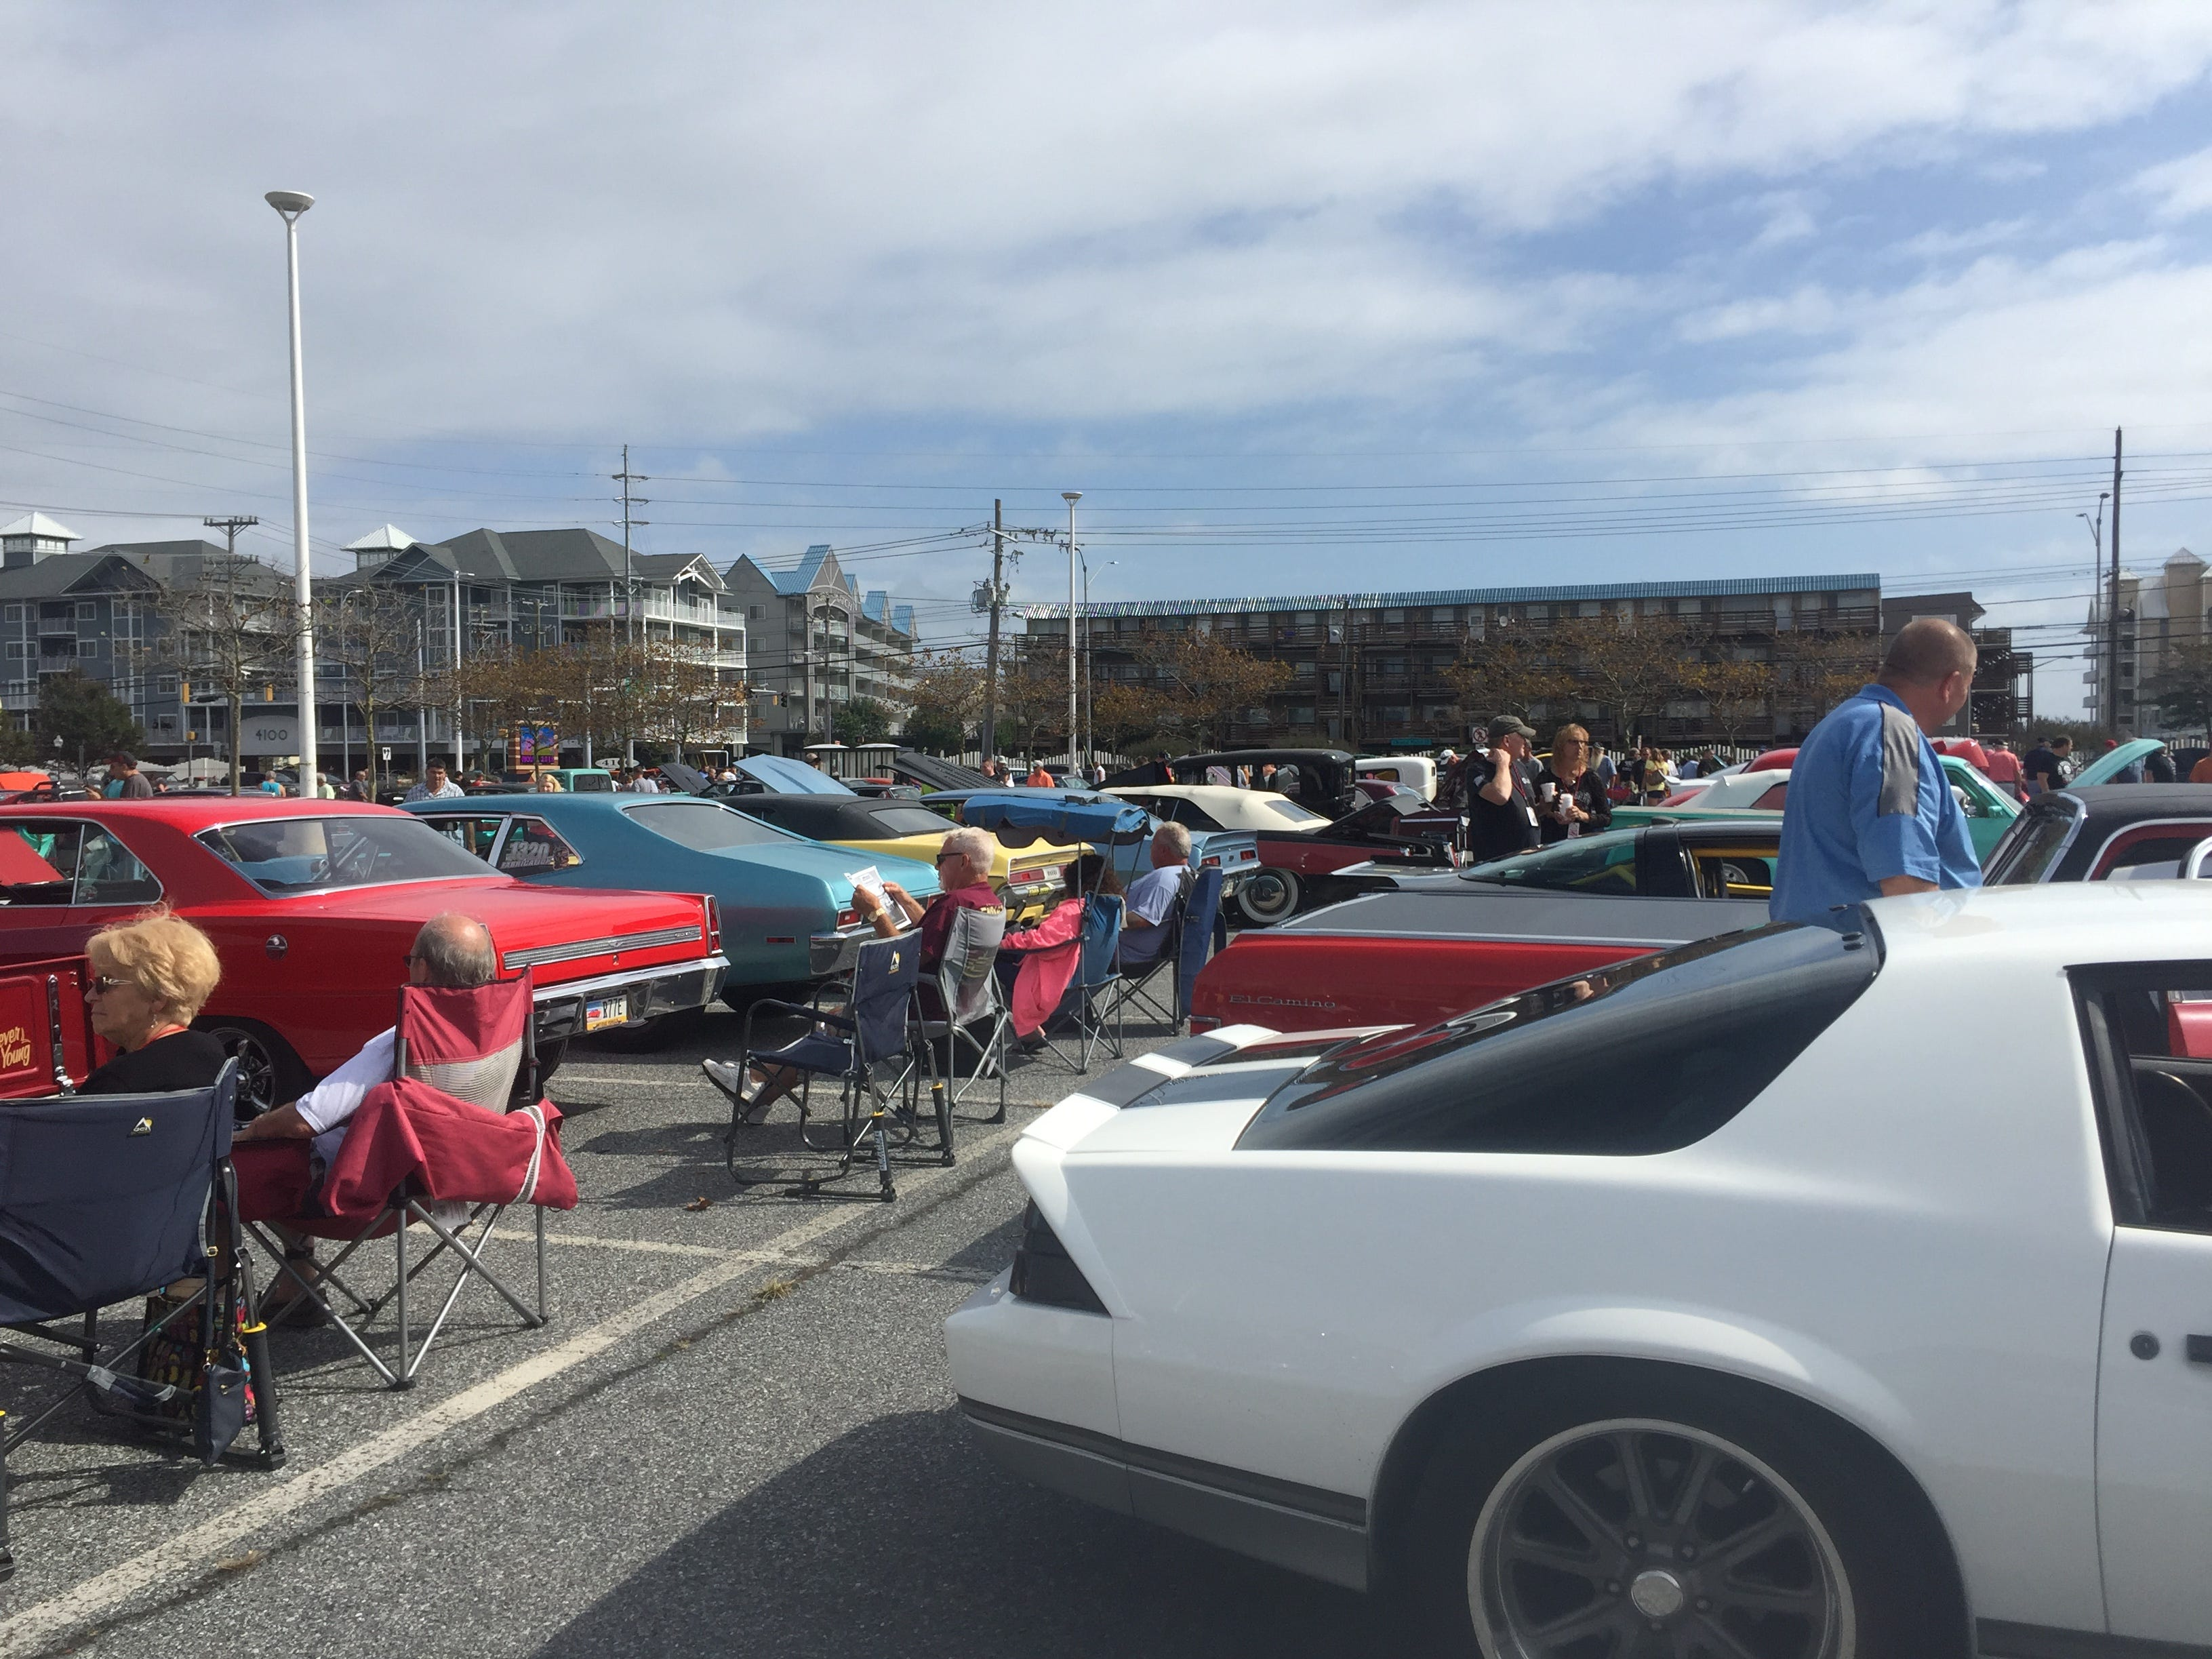 Many car enthusiasts sit in chairs beside their vintage vehicles, striking up conversations with other Endless Summer Cruisin' event attendees.